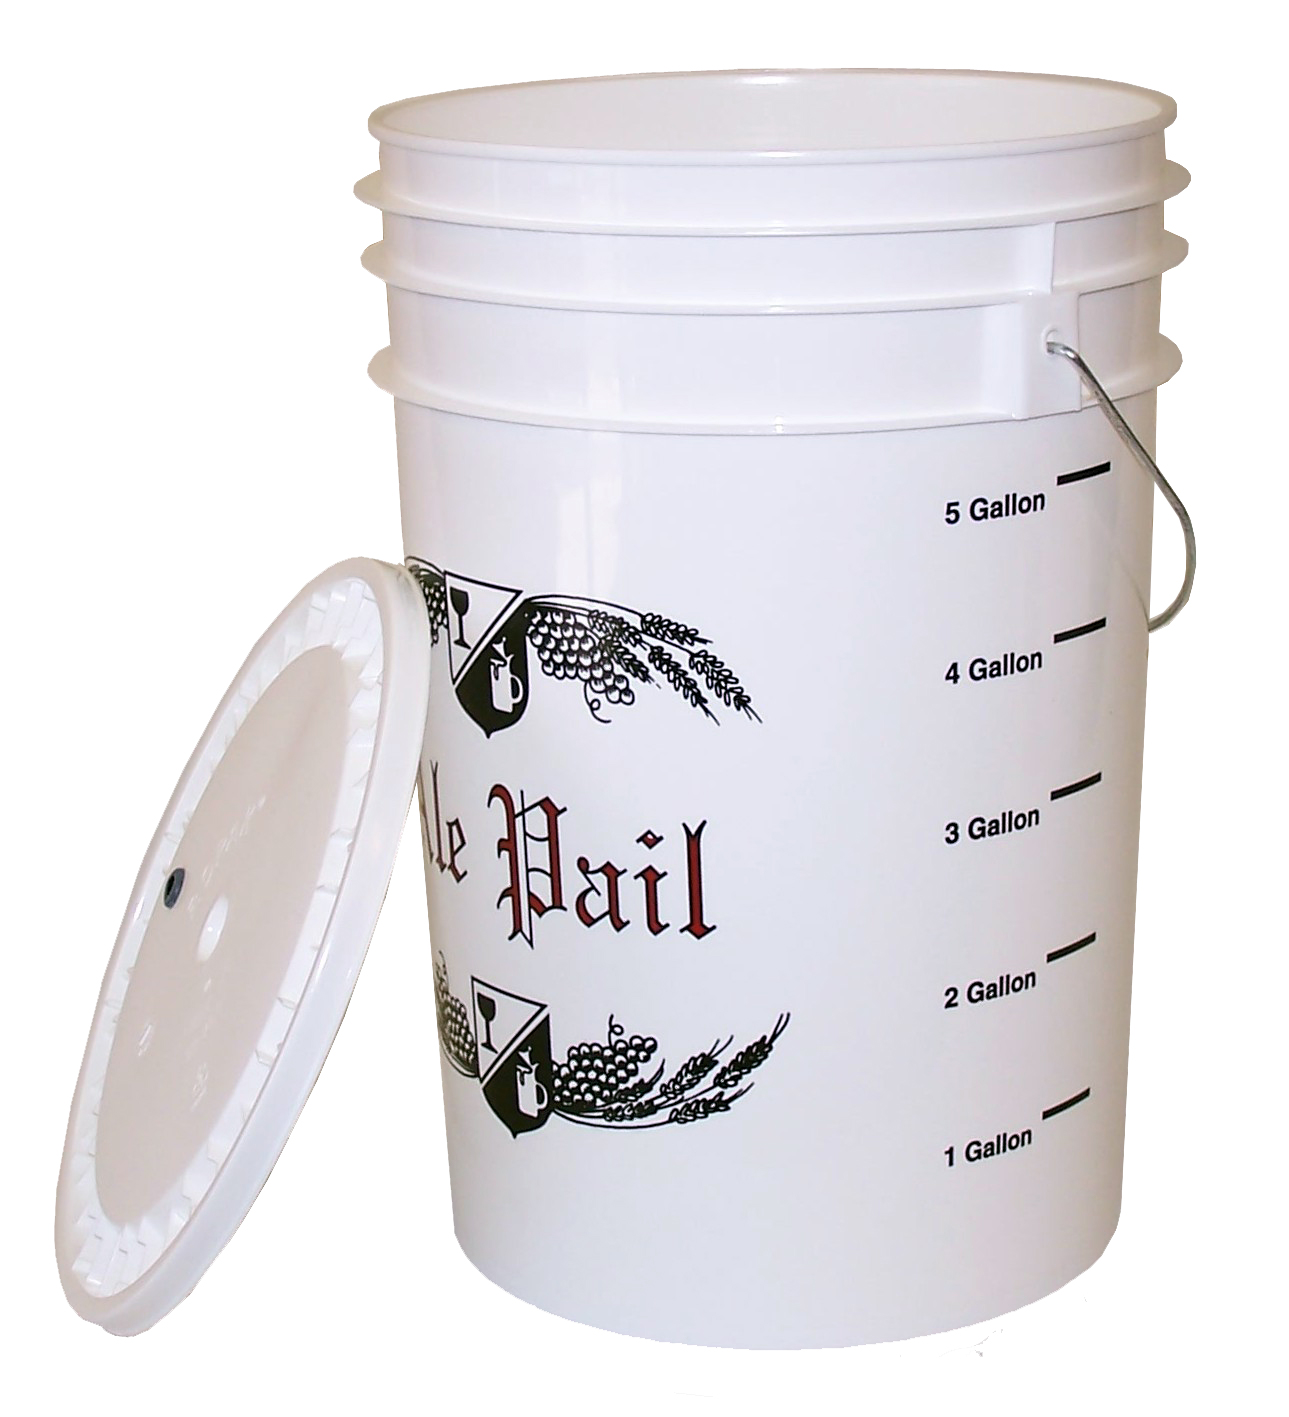 6 gallon fermentation bucket